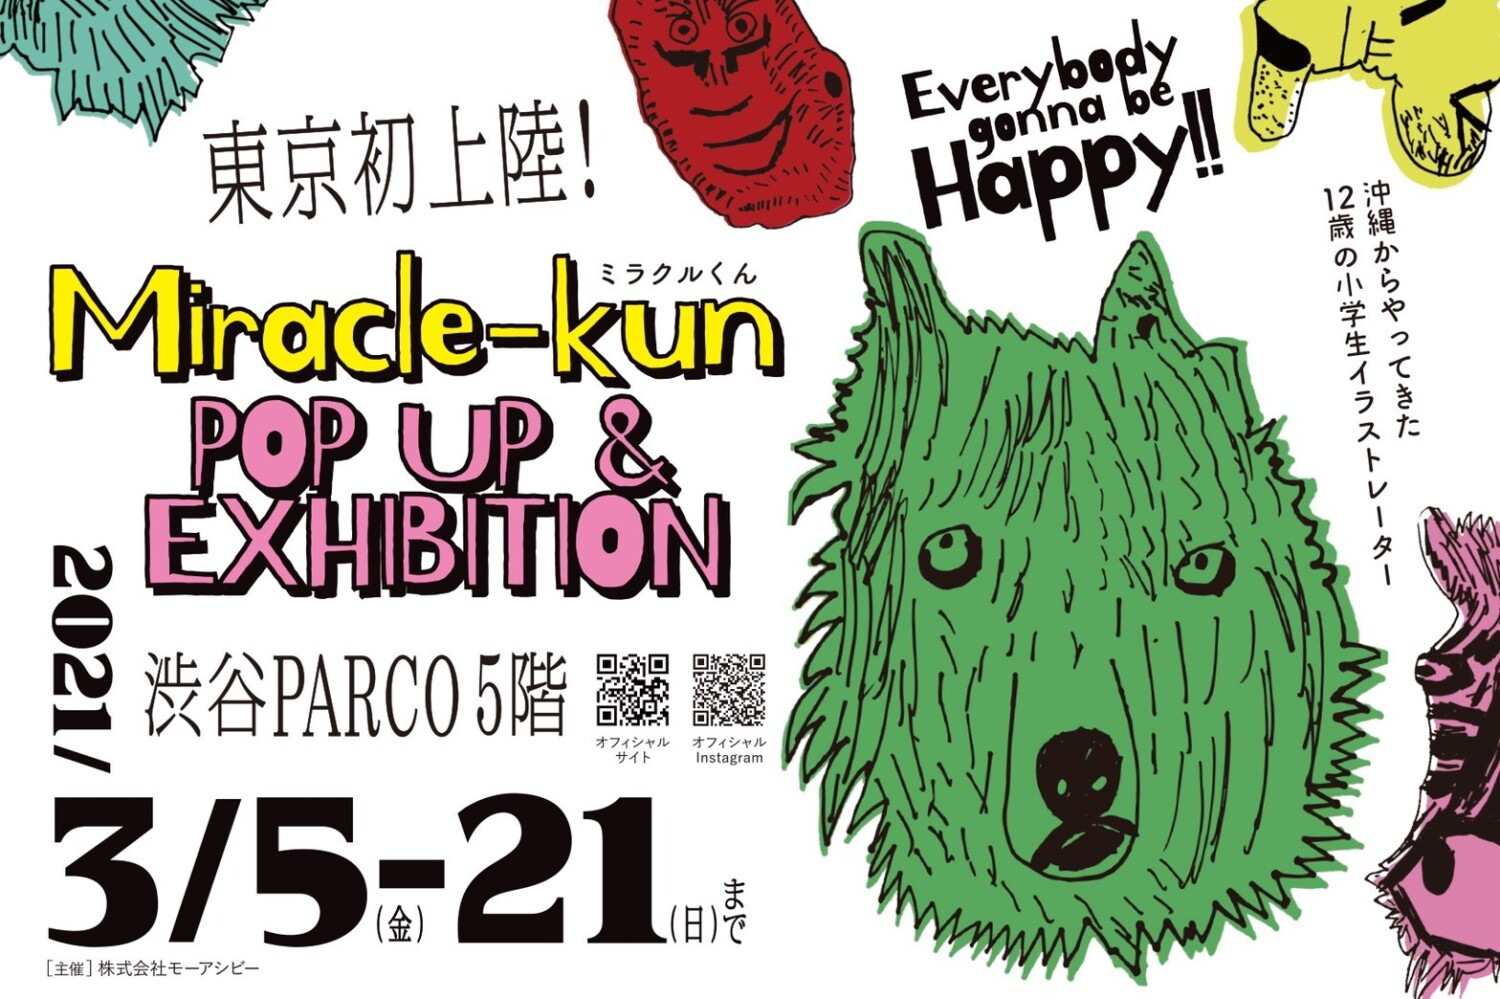 Miracle-kun Pop Up & Exhibition「Everybody gonna be Happy!!」